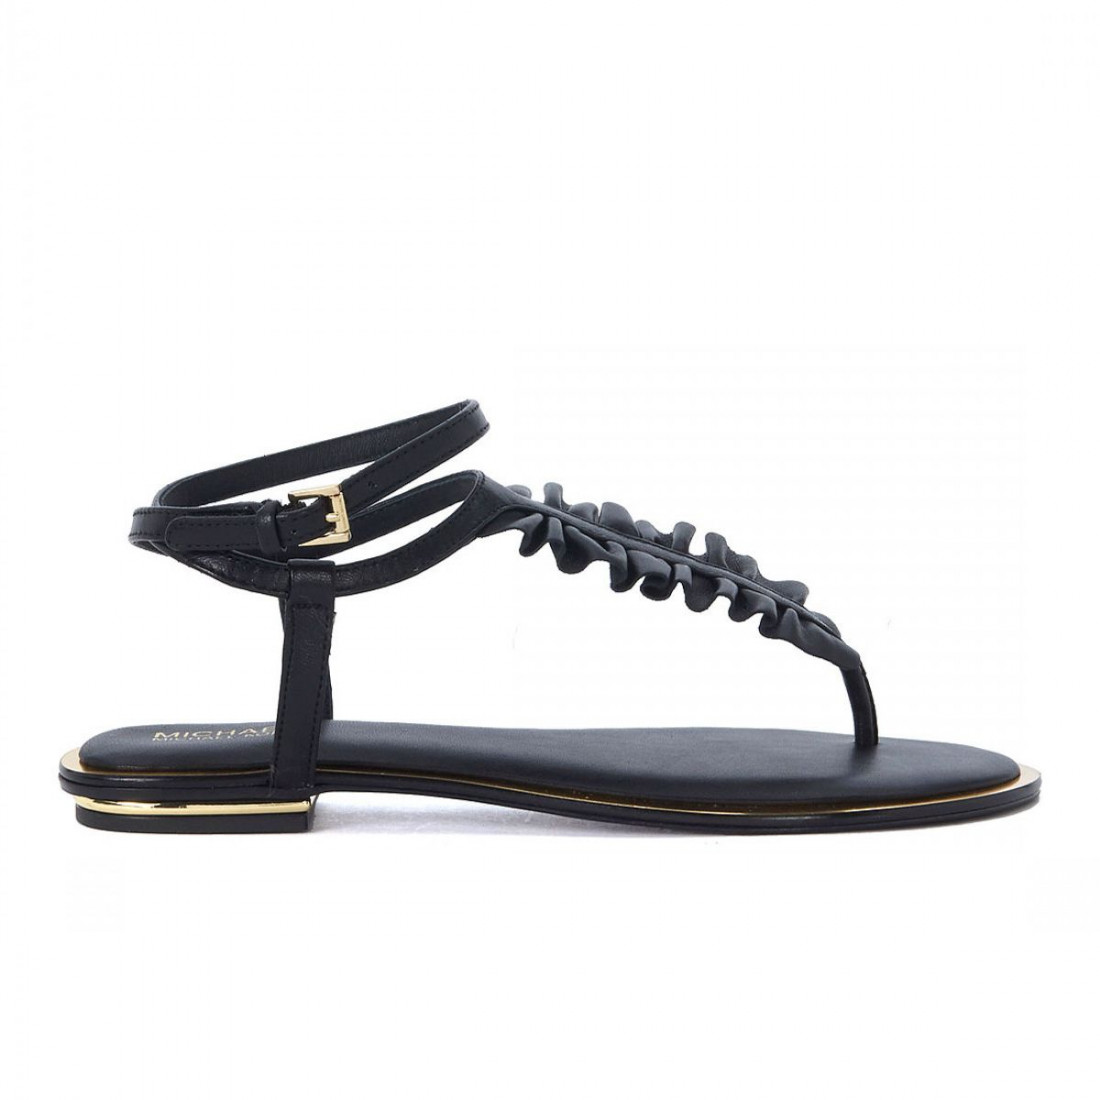 sandals woman michael kors 40s8blfa2l 001 3453